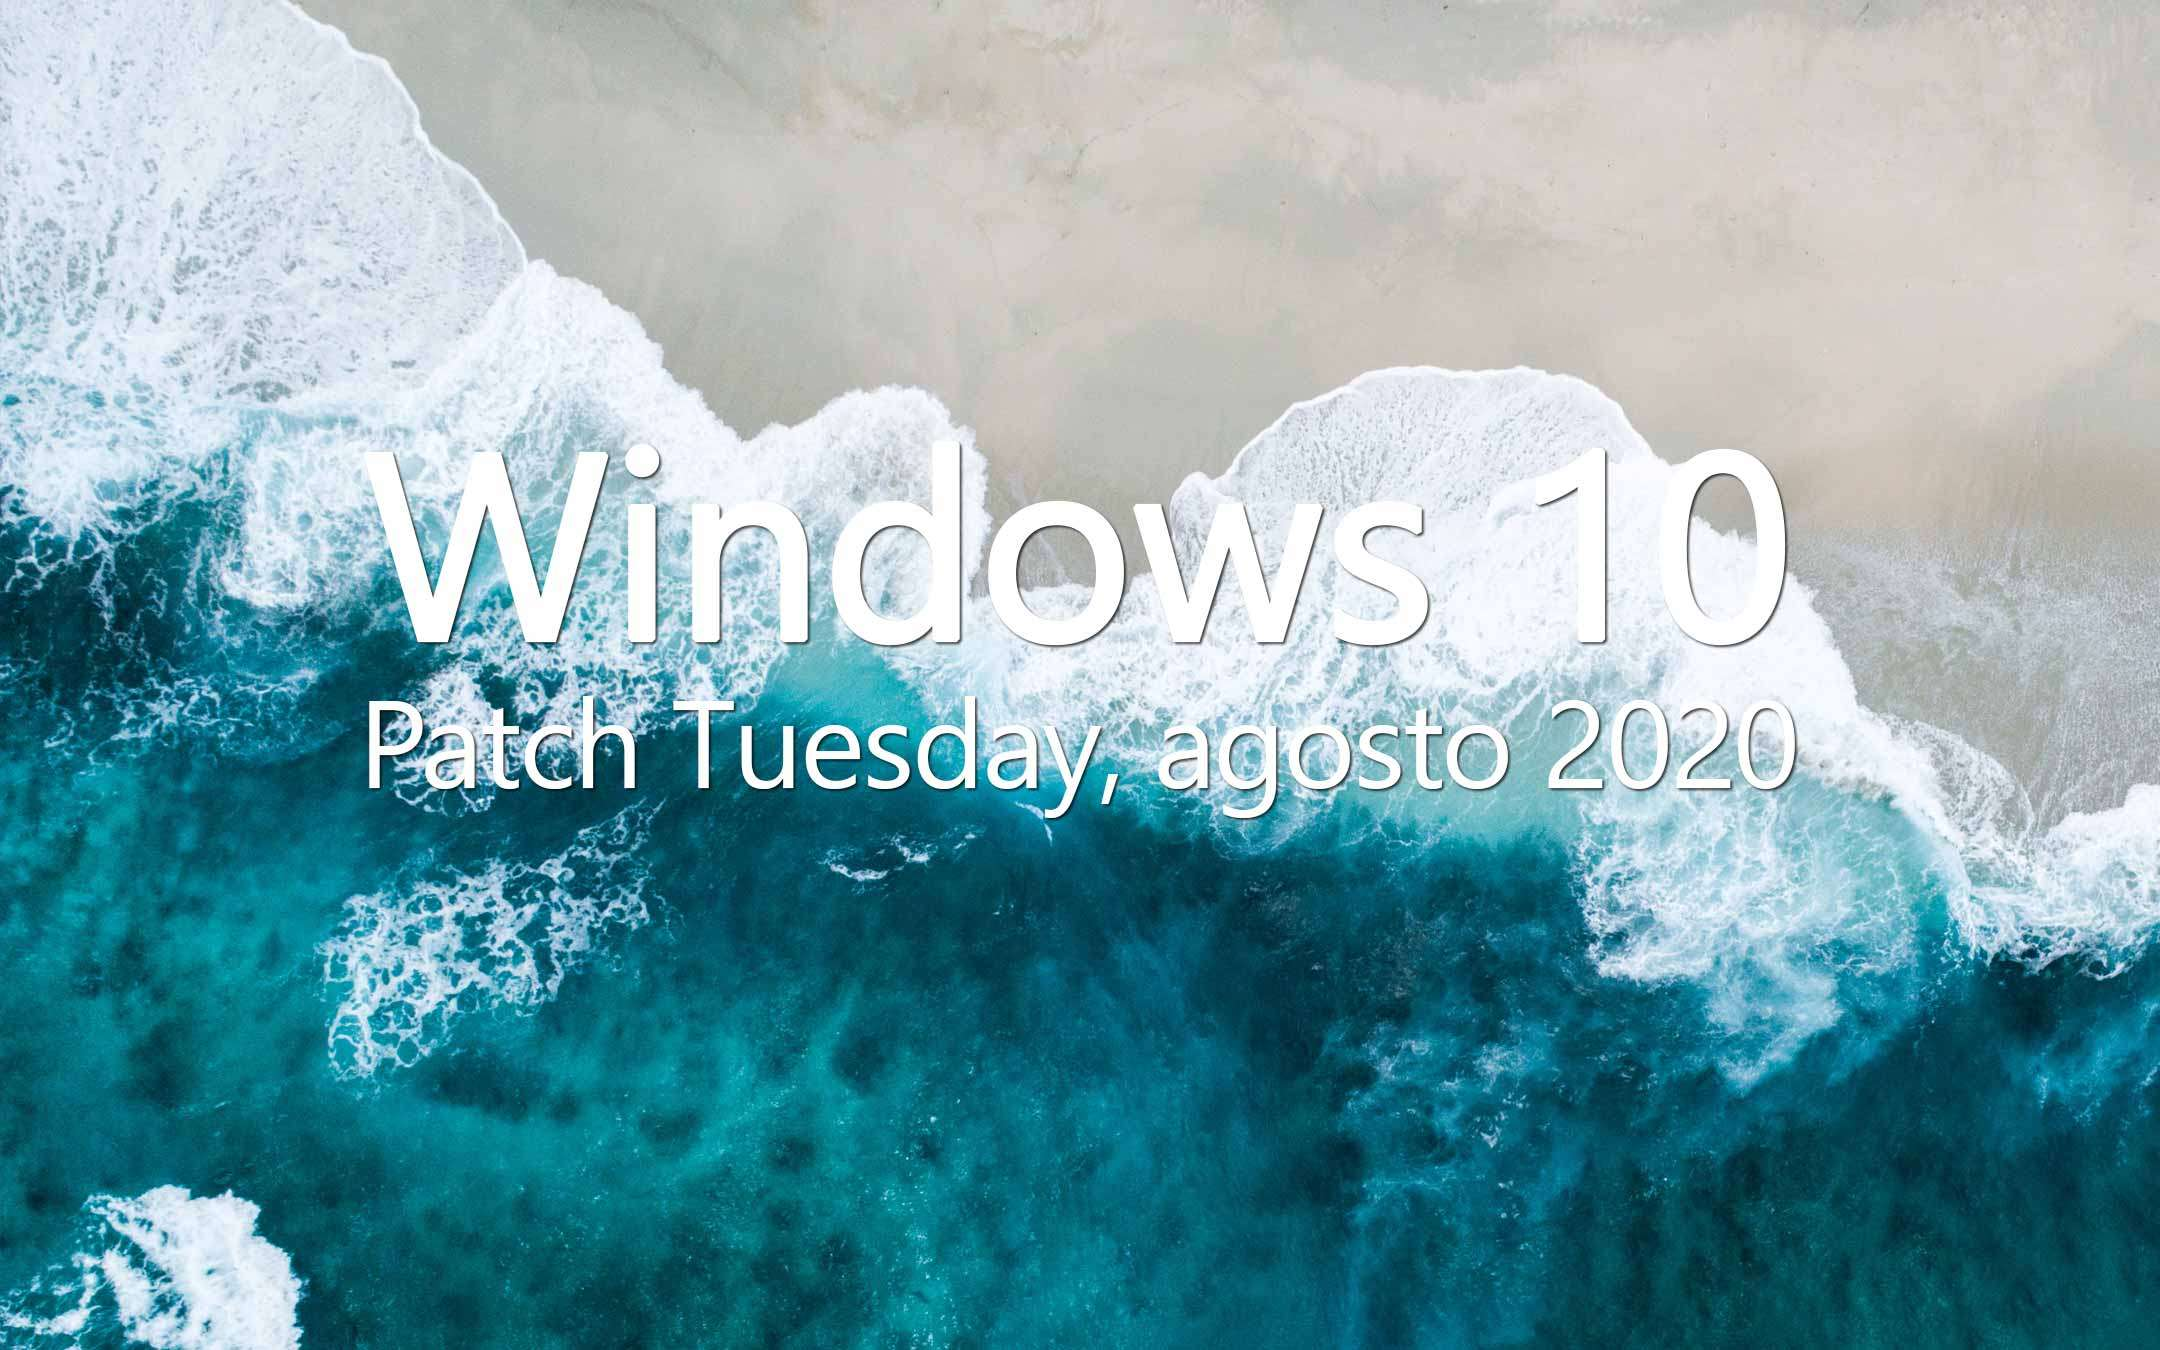 Windows 10, Patch Tuesday agosto 2020